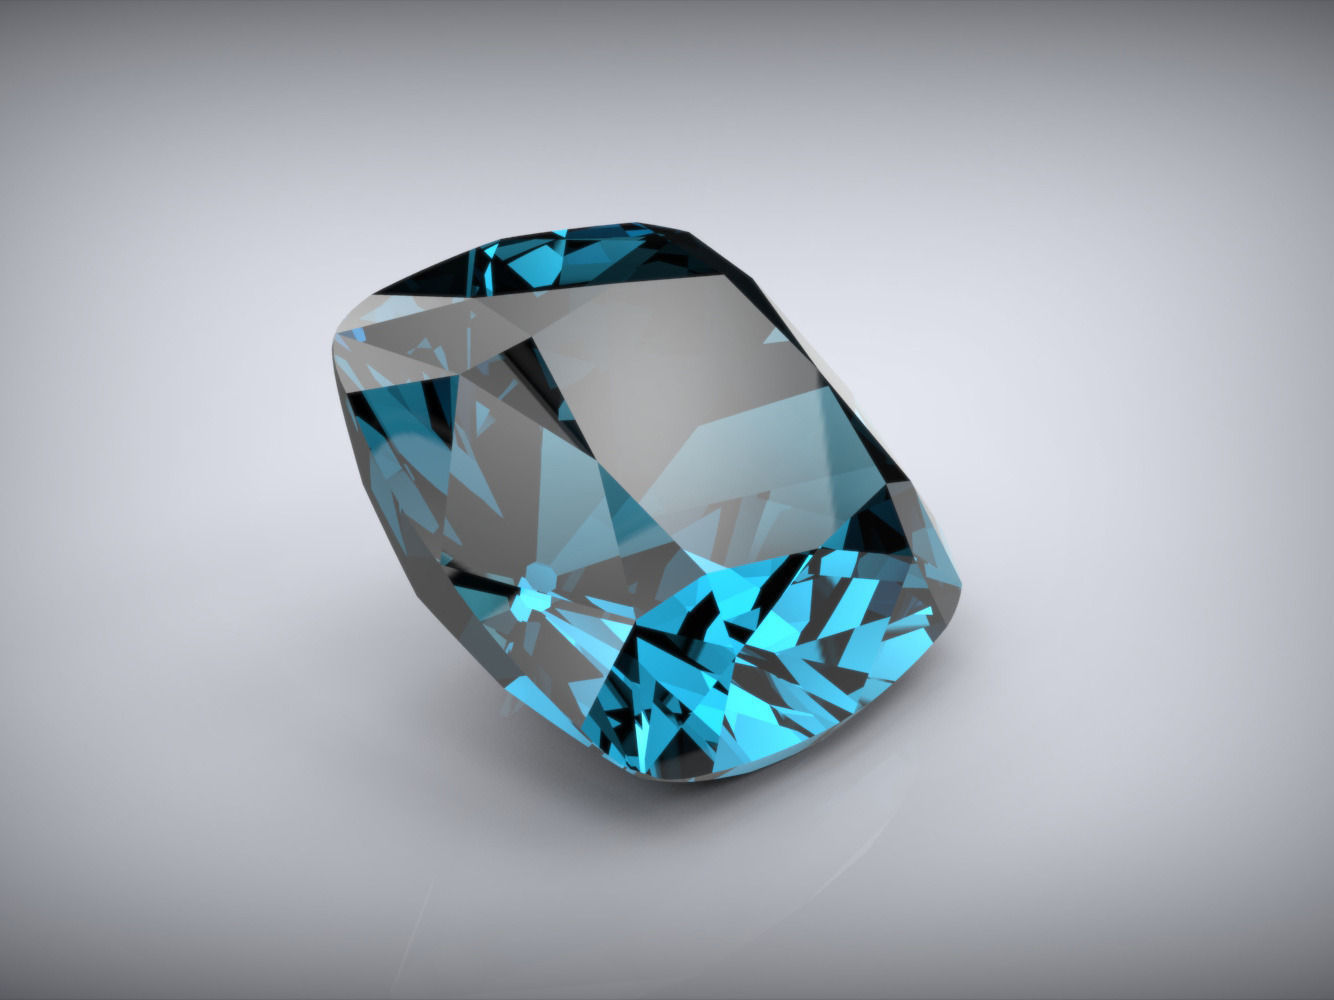 Cushion Cut Gem 10mm 3d Model Free 3d Model 3d Printable